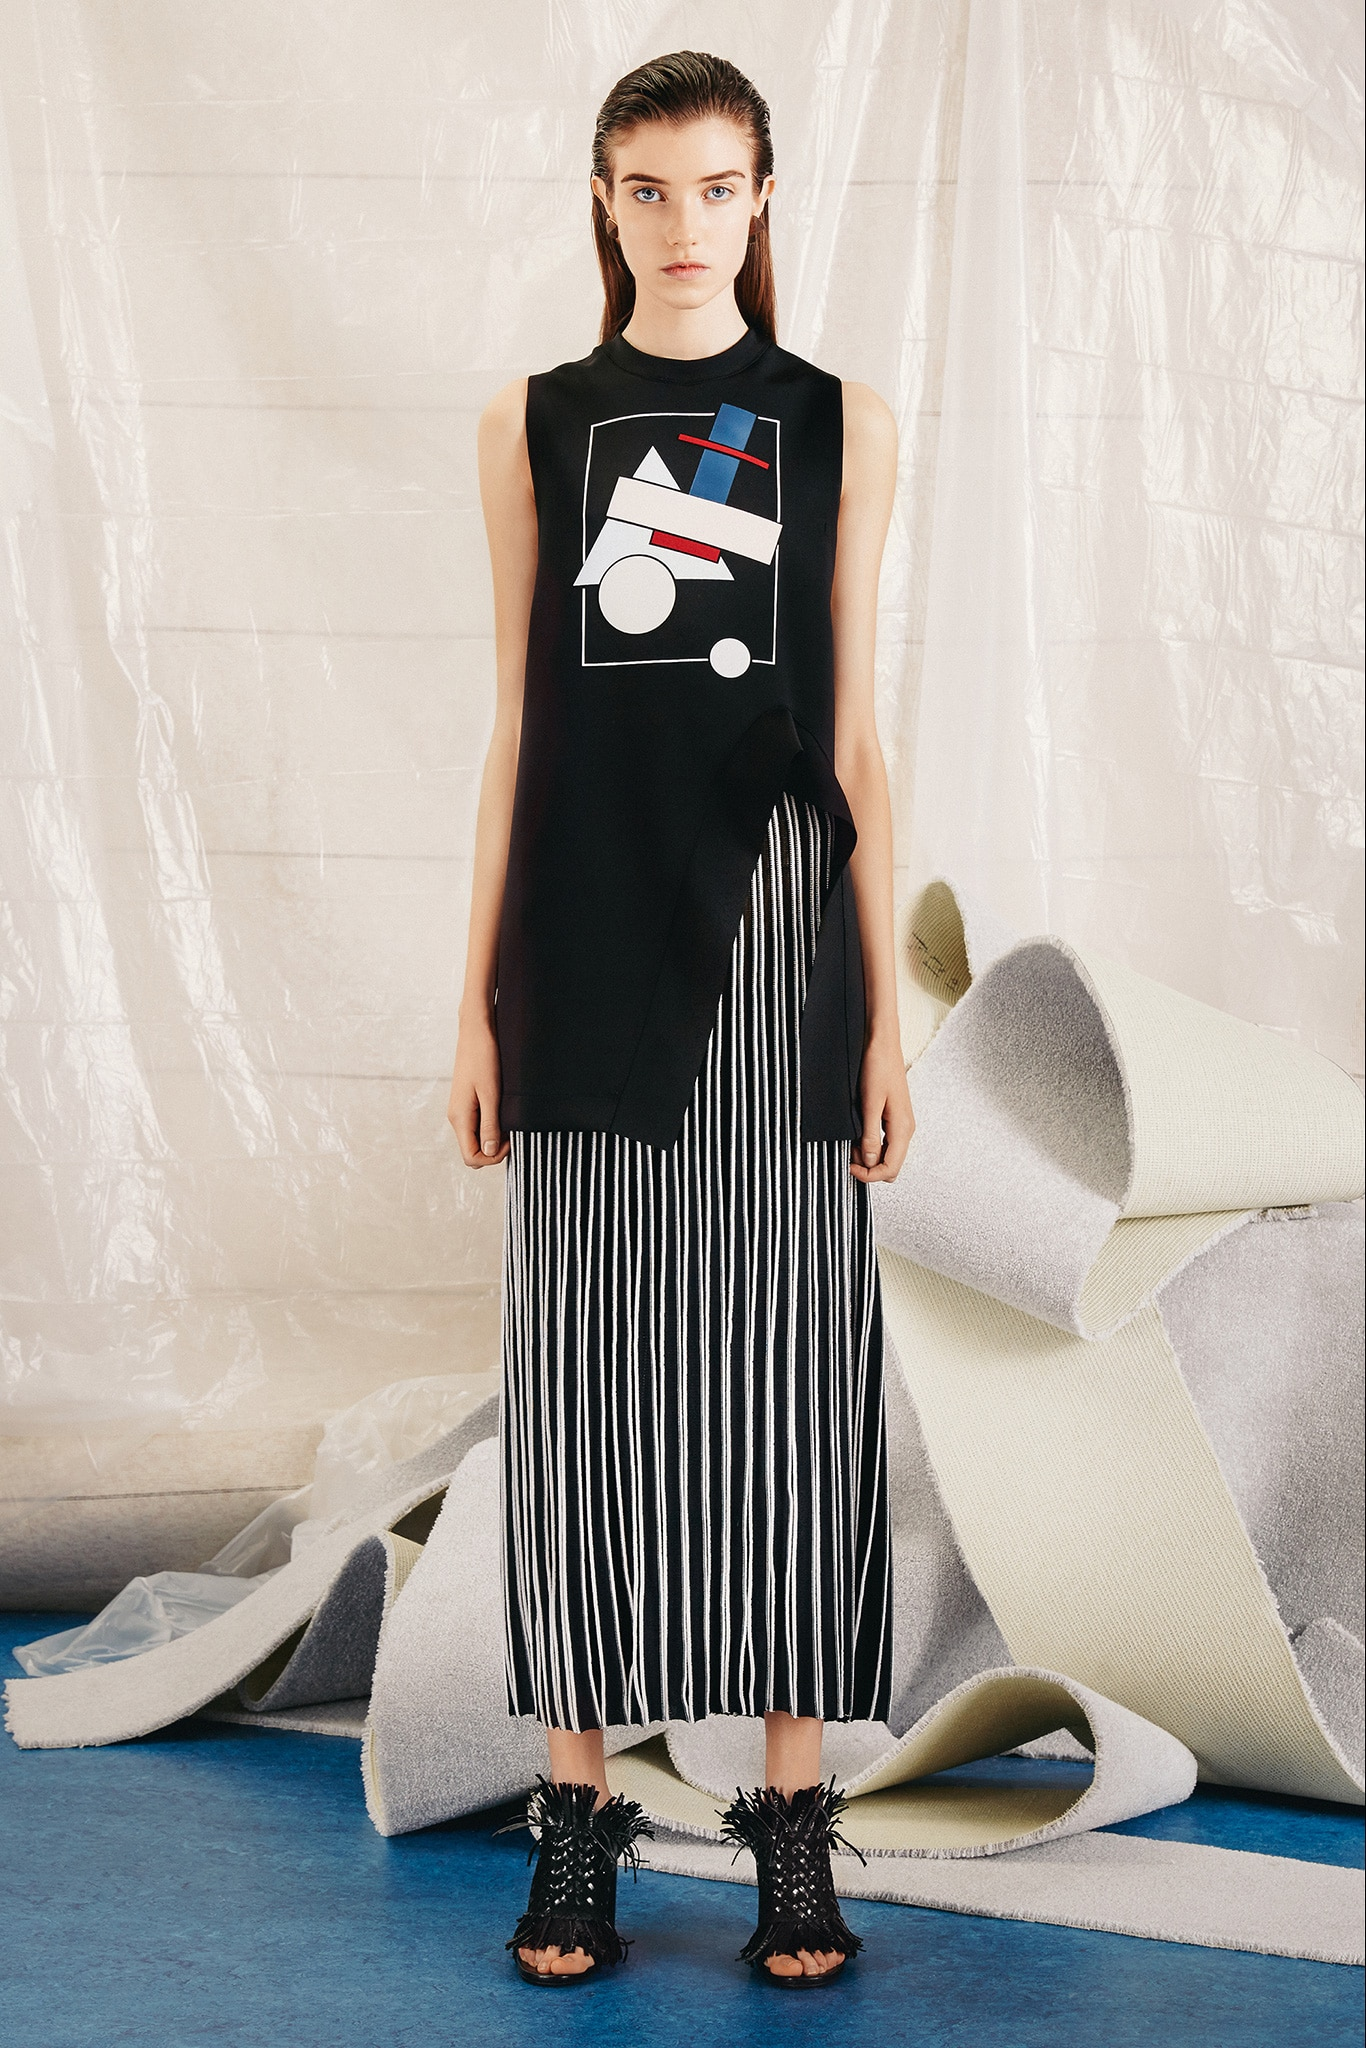 Proenza Schouler Pre Fall 2015 Collection Featuring The